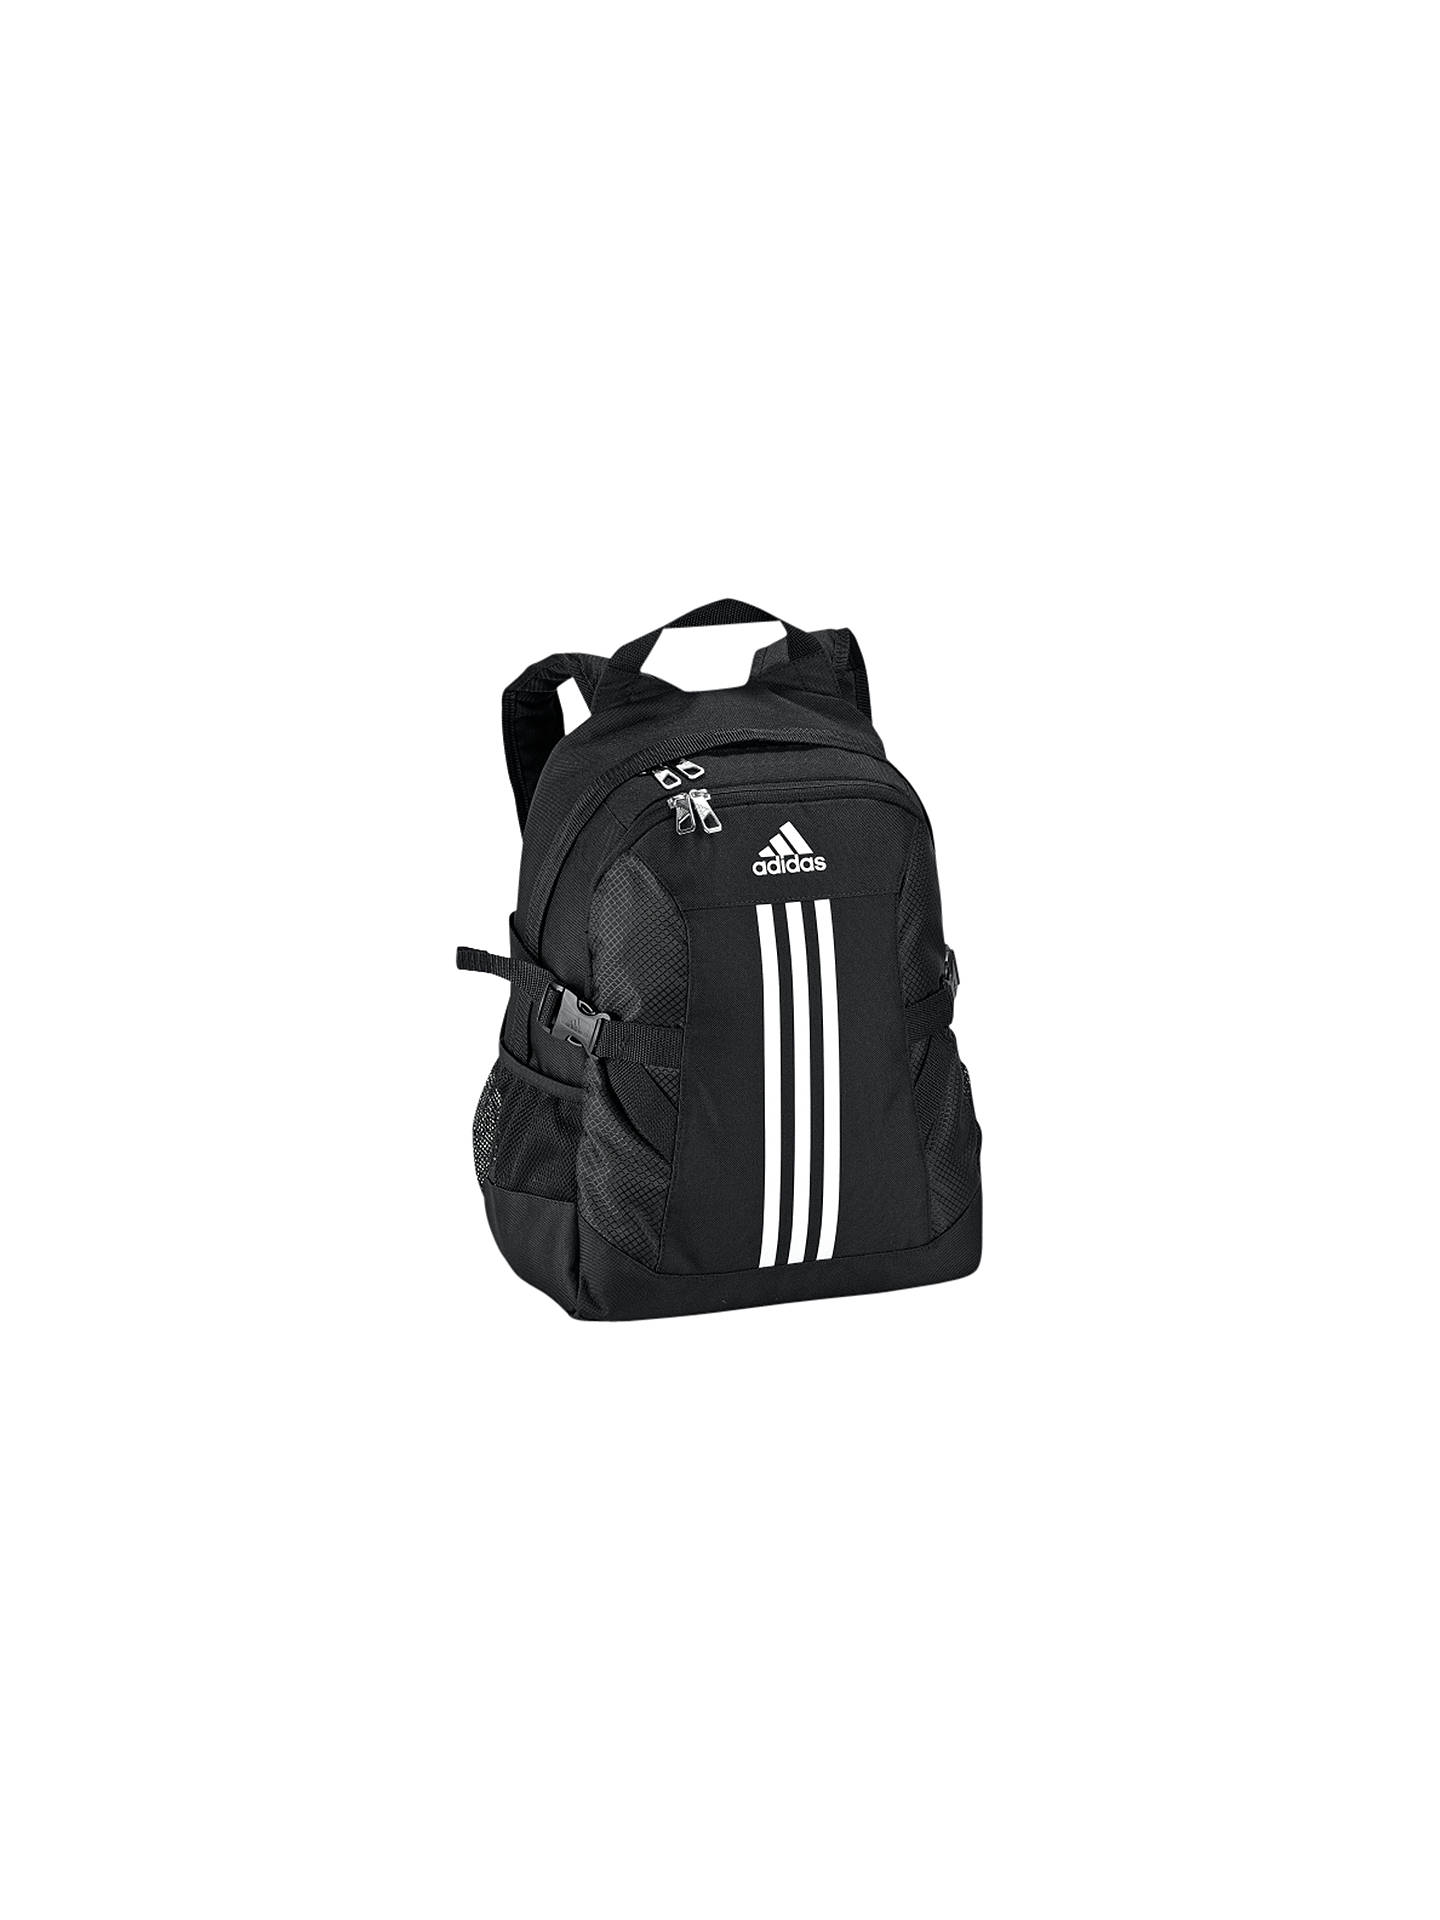 BuyAdidas 3 Stripes Backpack 4fdc684673f80